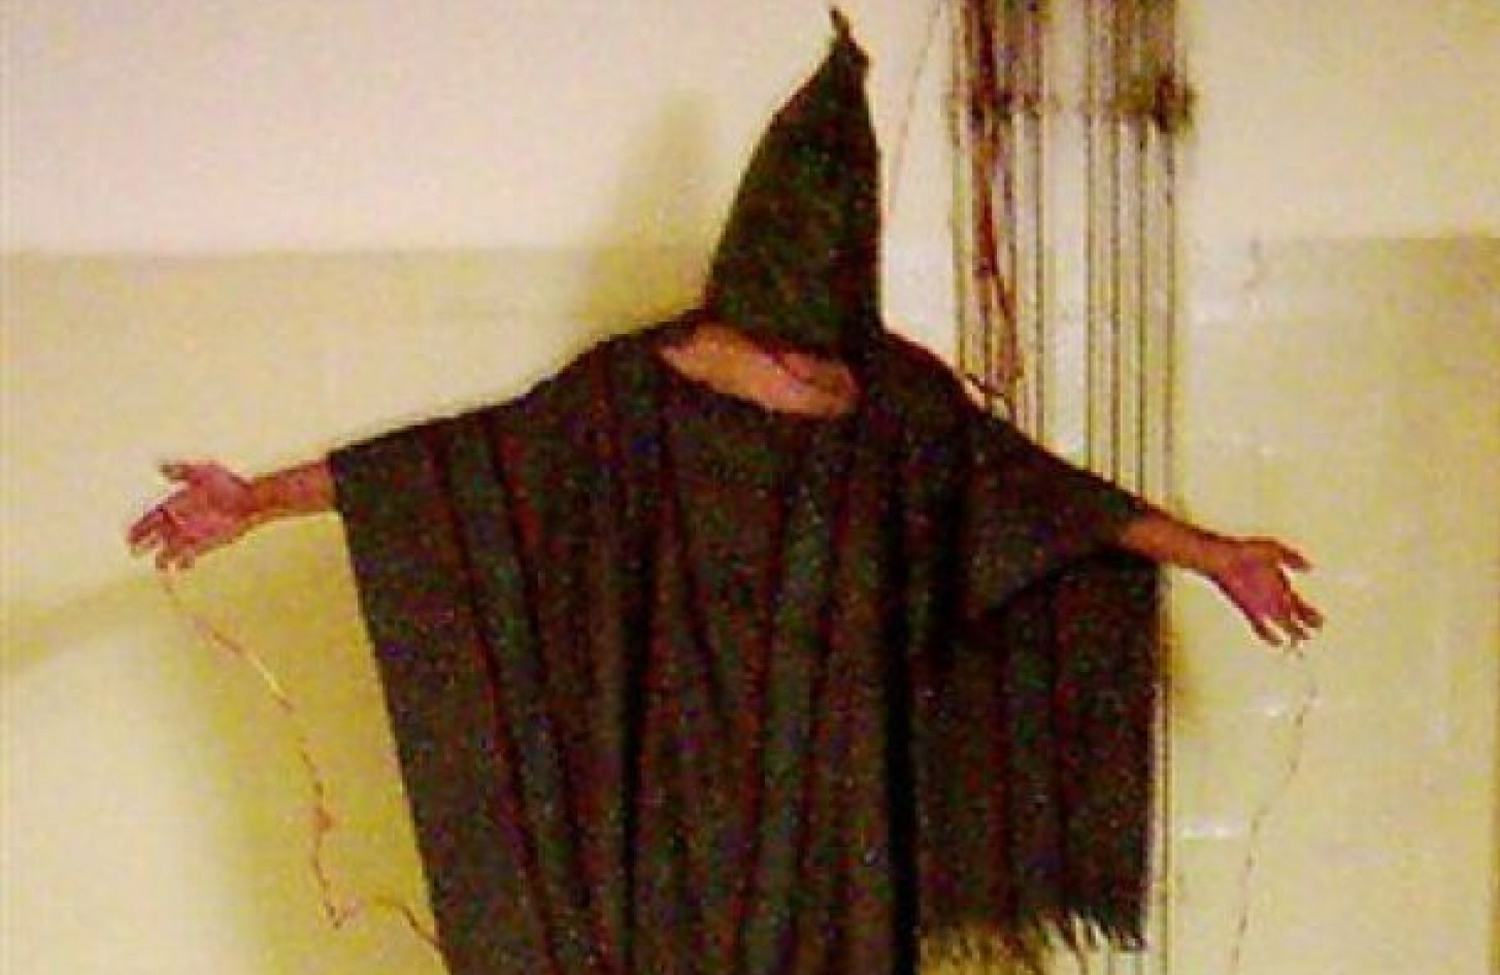 Photo-of-a-man-being-tortured-at-Abu-Ghraib-prison